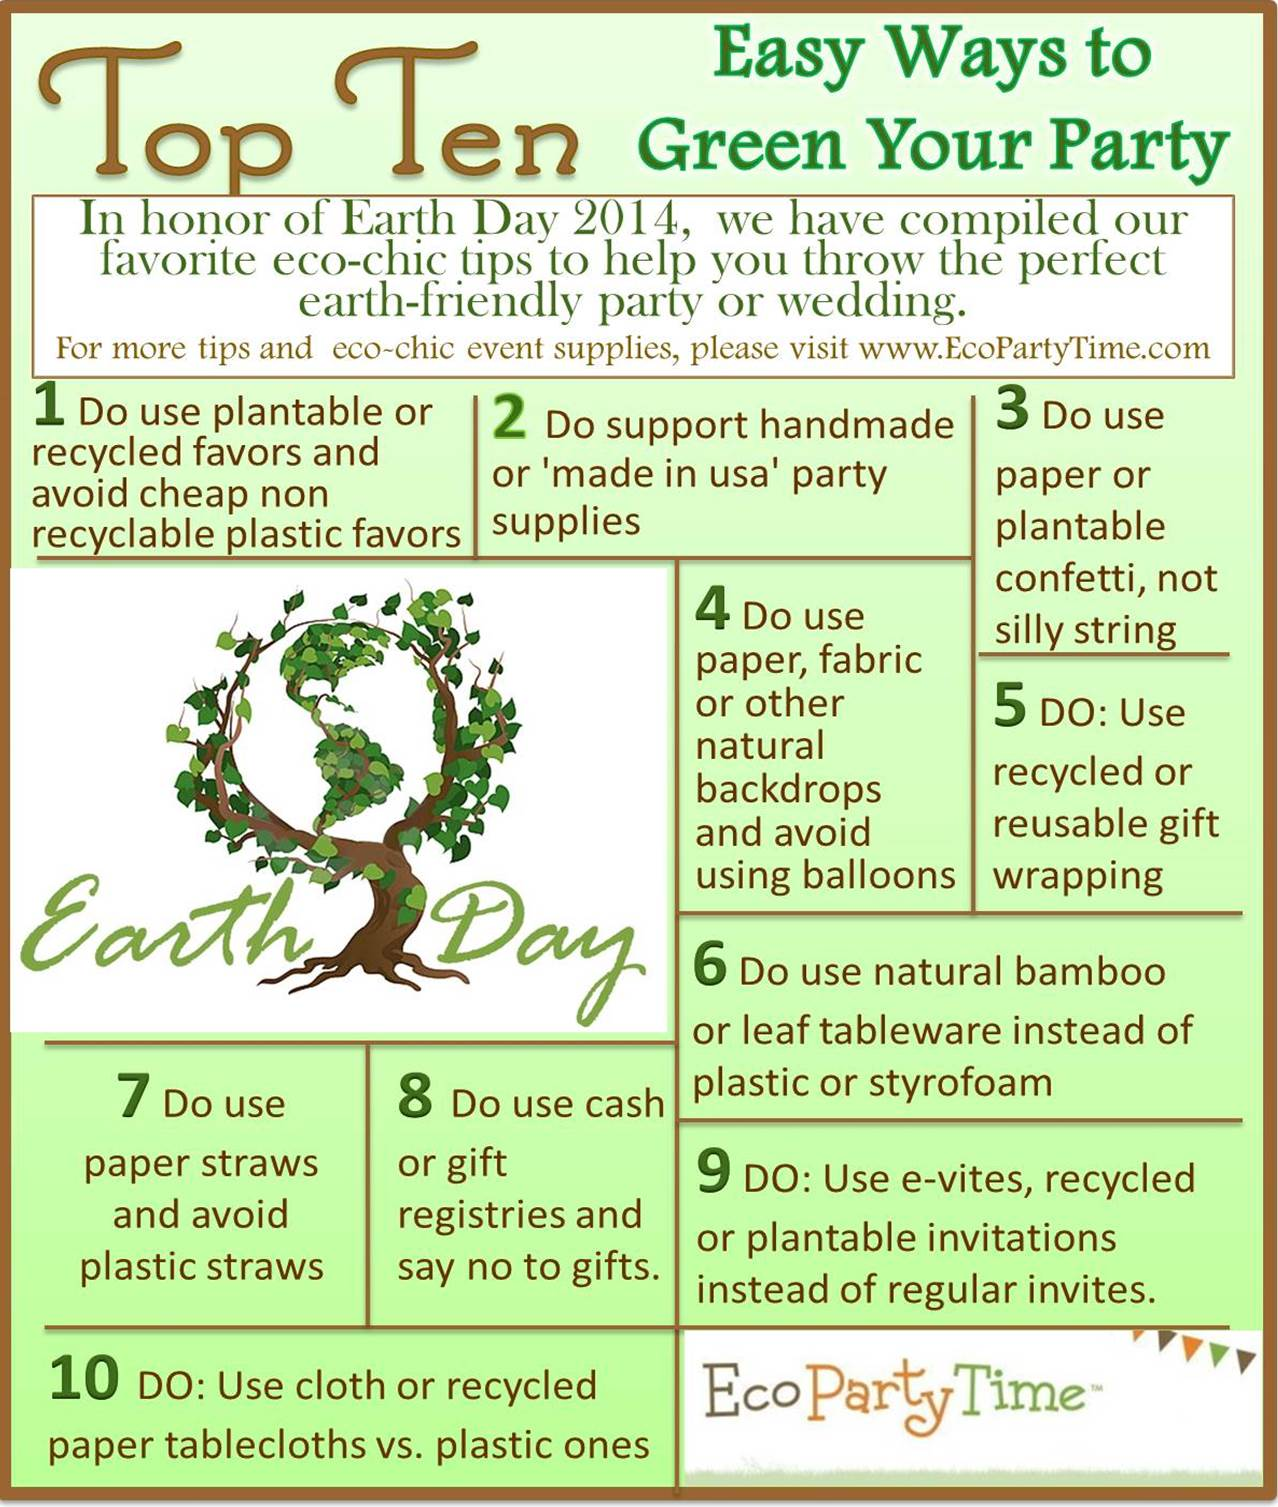 Top 10 Earth Day Ways to Green Your Party Ecopartytime.com